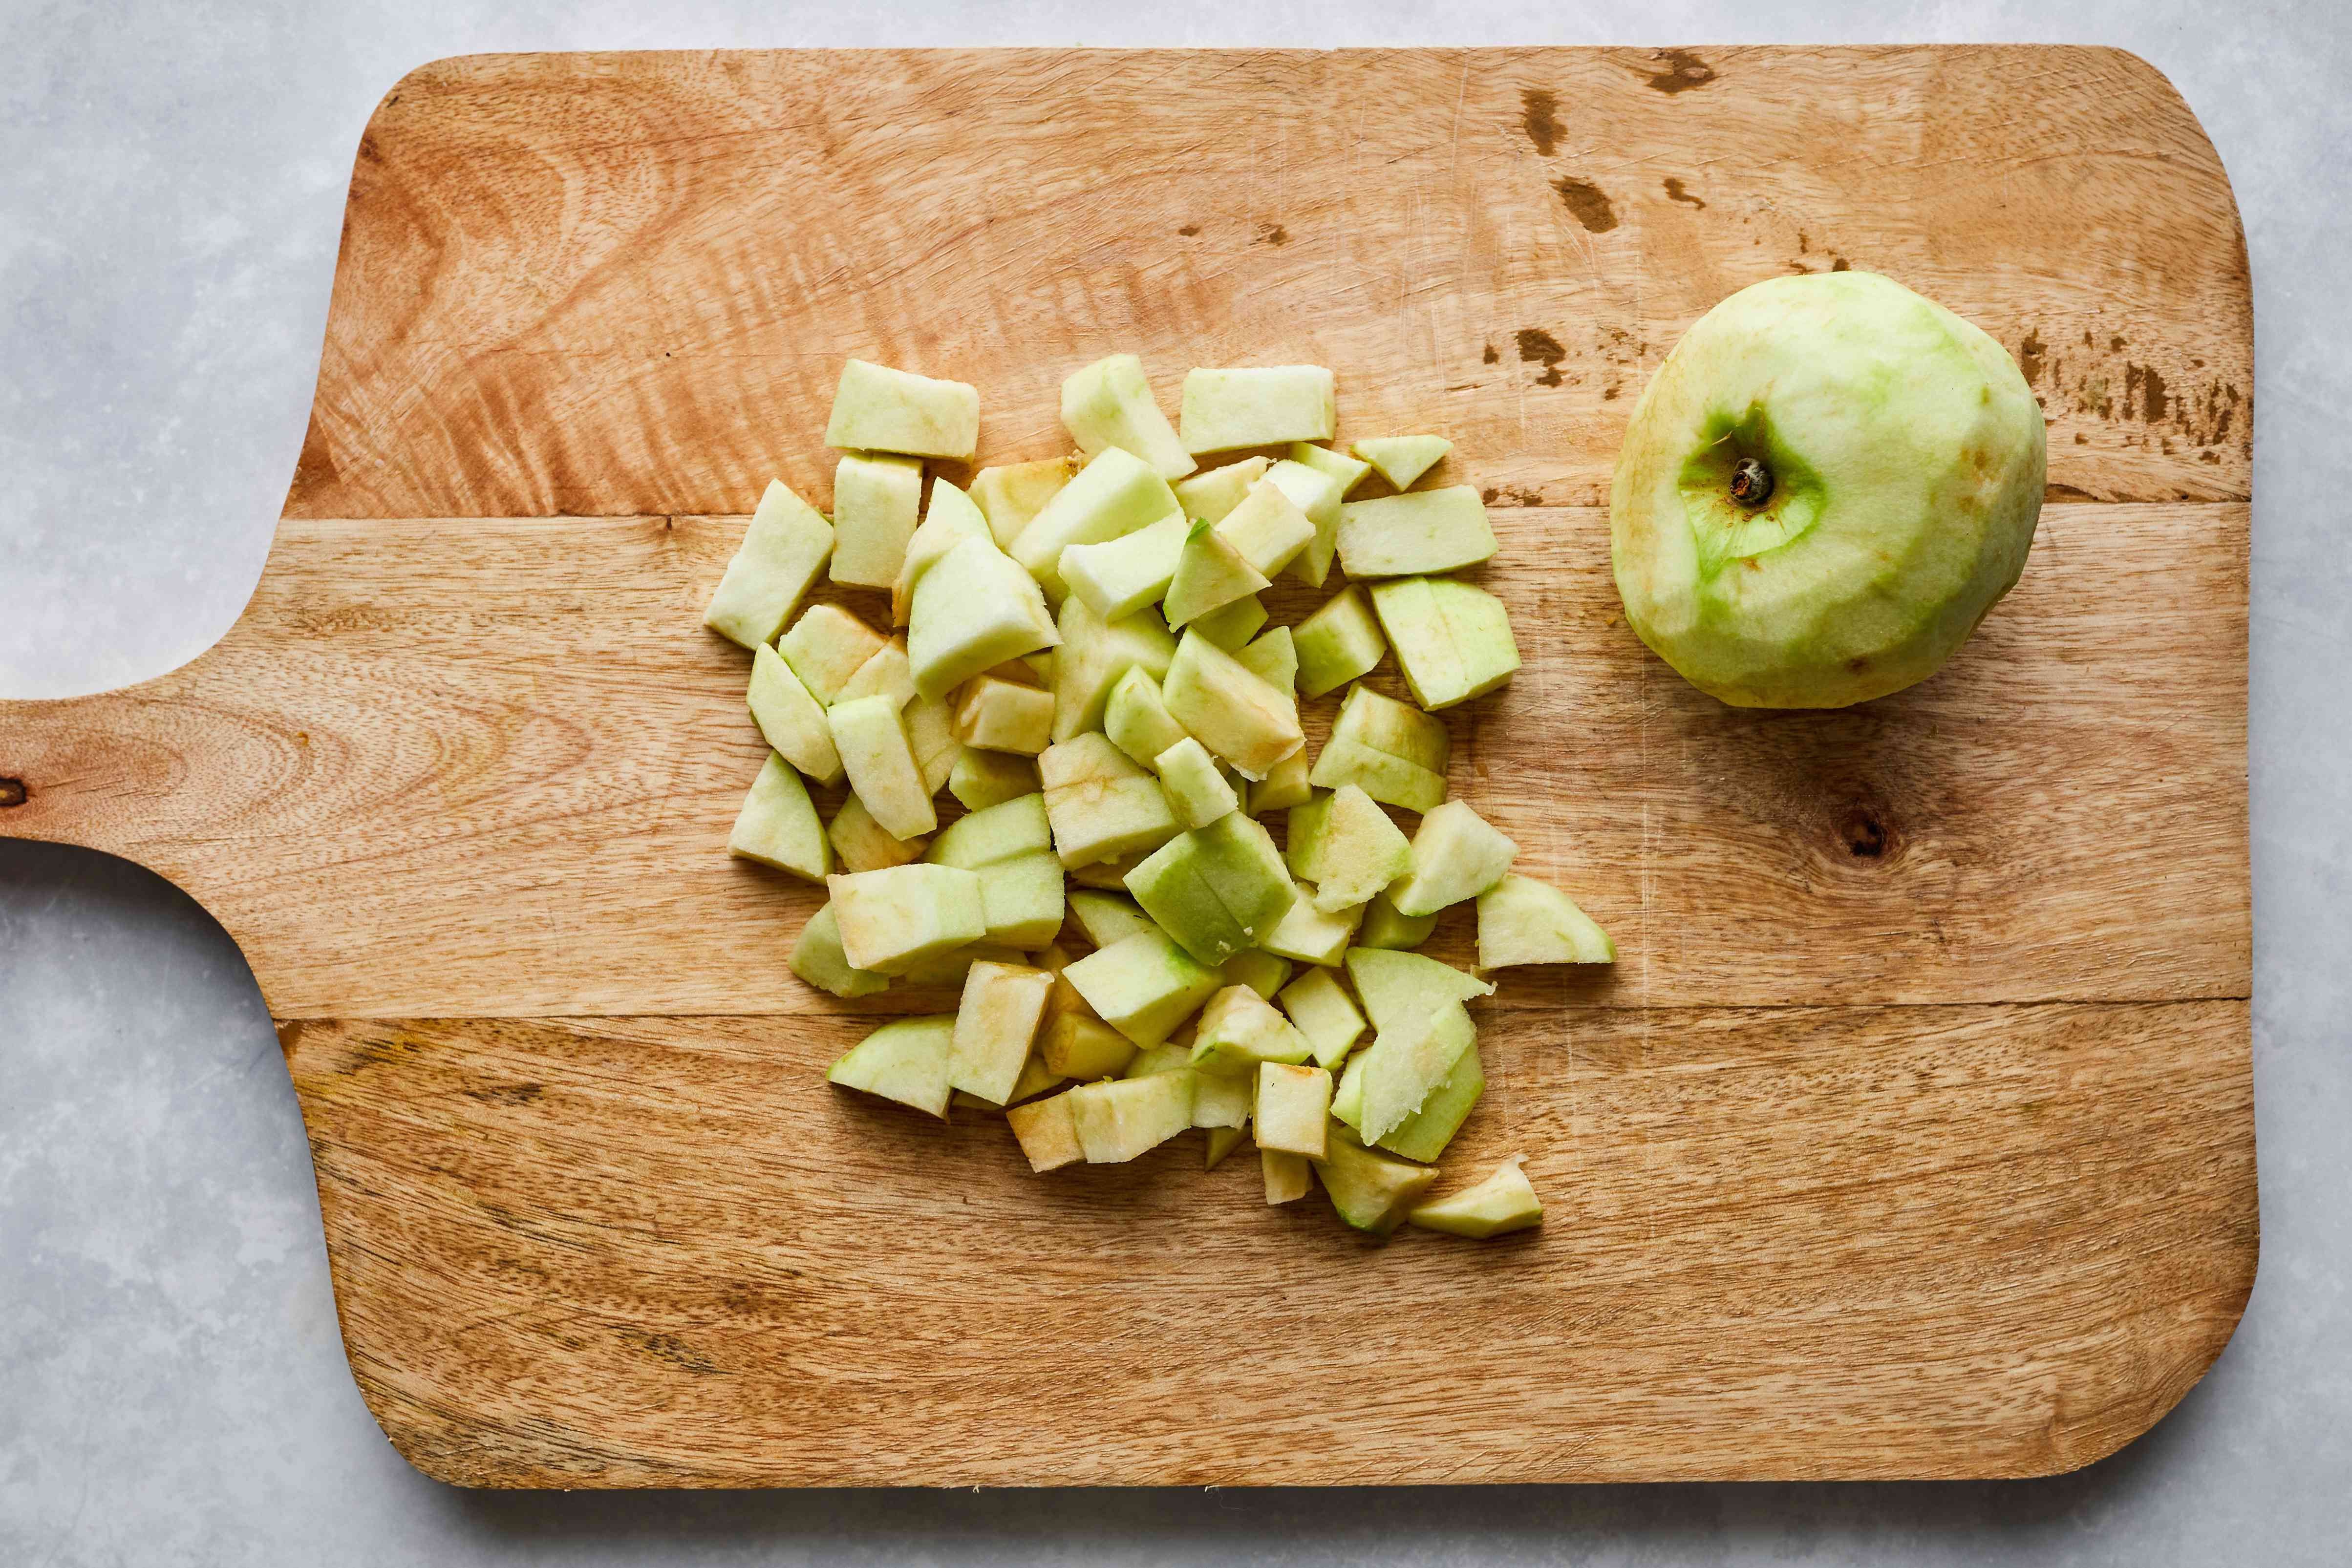 Peeled and chopped green apple